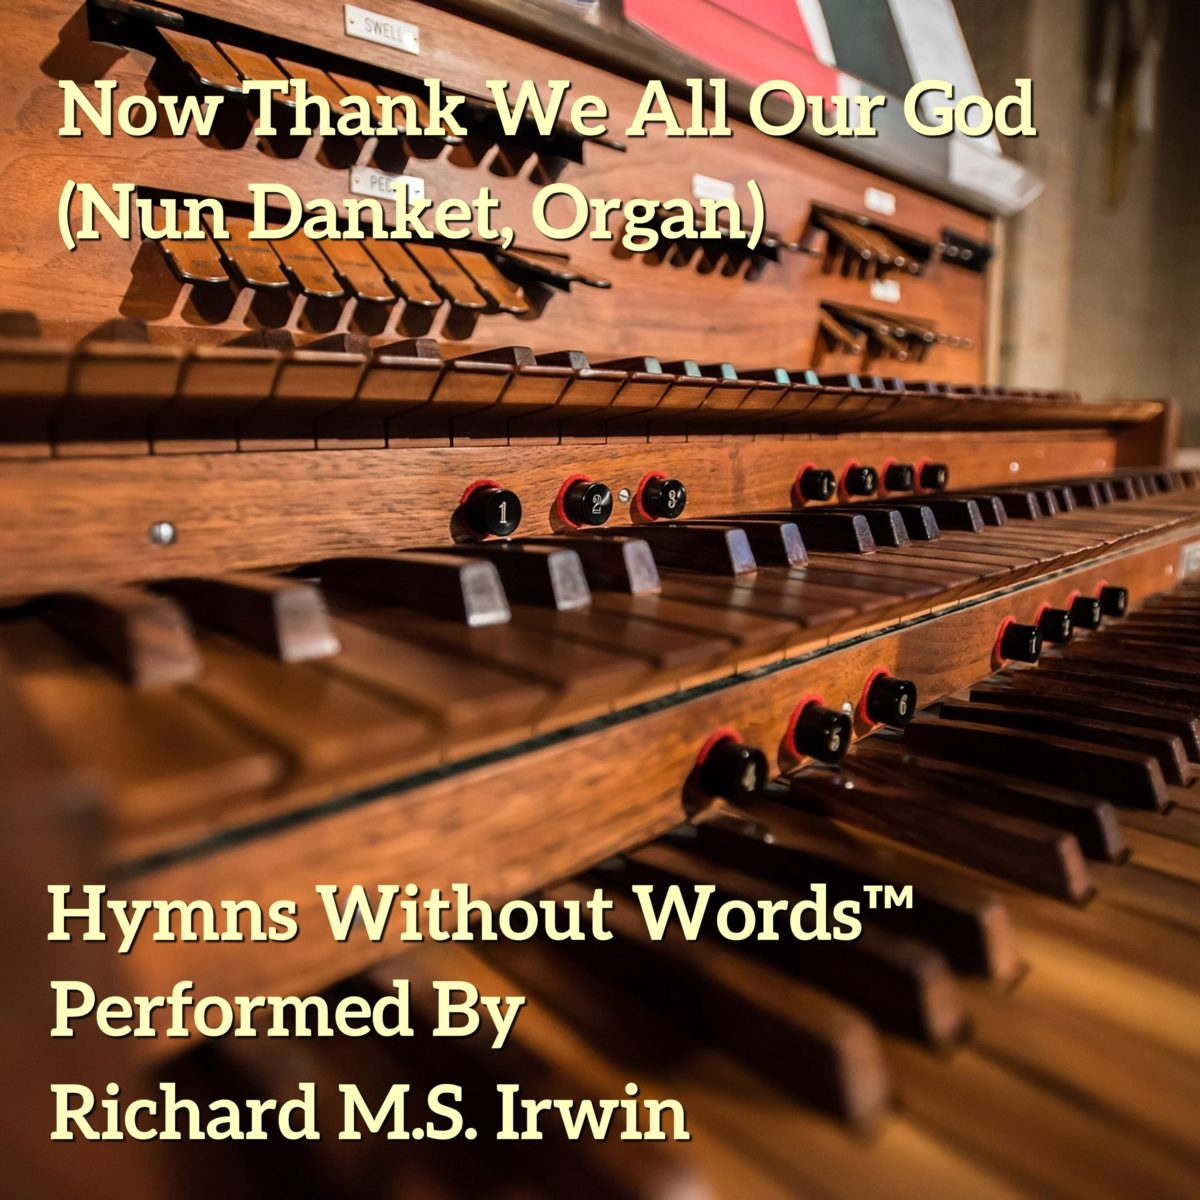 Now Thank We All Our God (Nun Danket, Organ, 3 Verses)